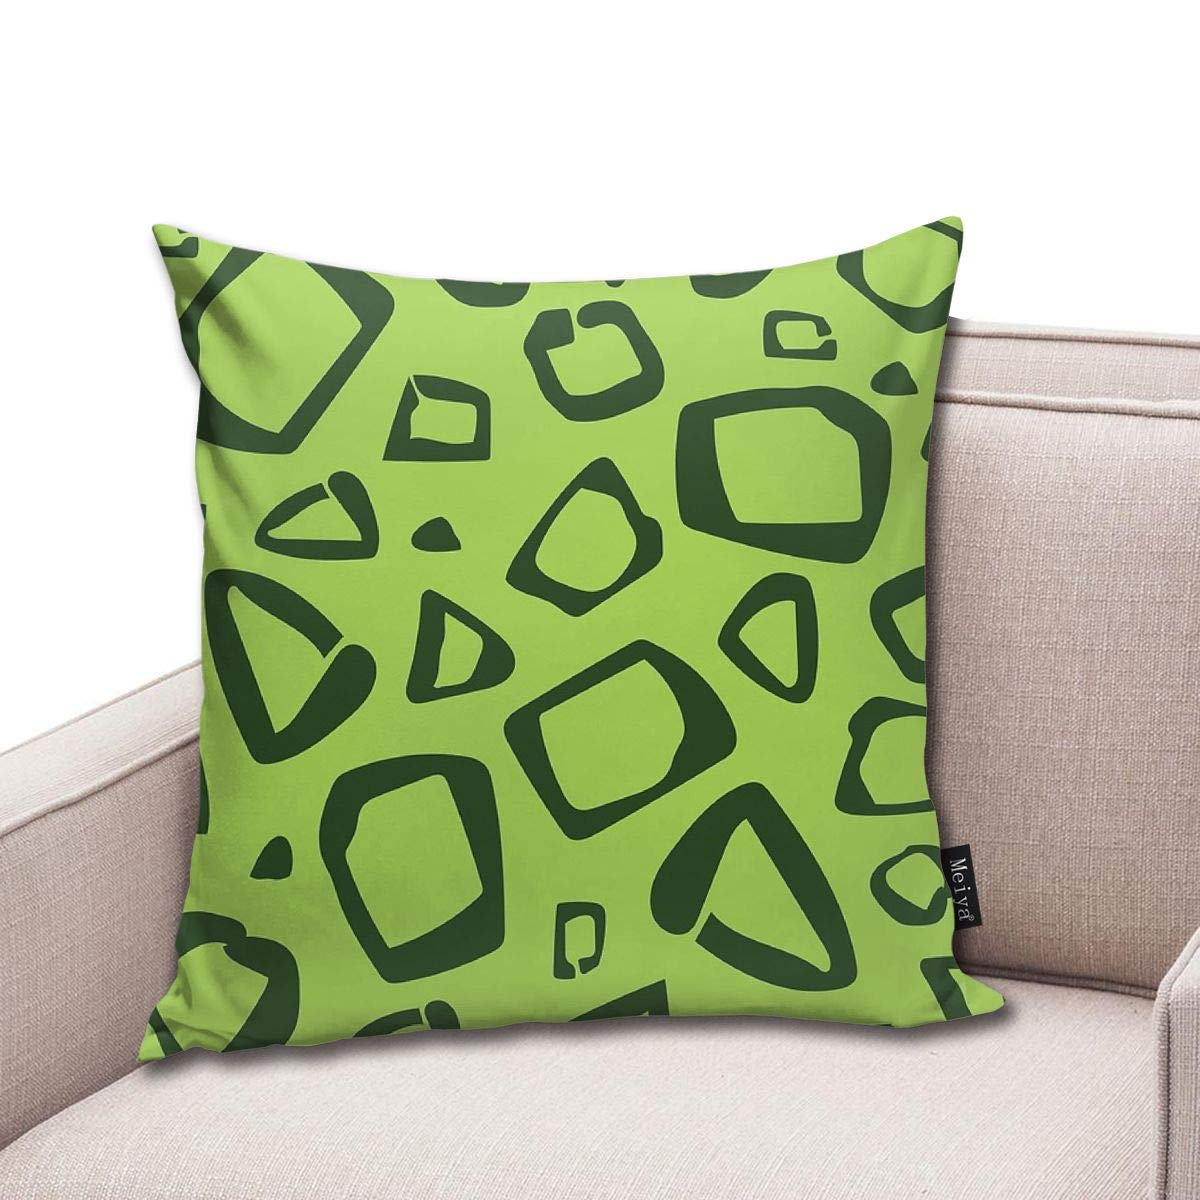 popluck Customize Funny Throw Pillow Cover 18 x 18 Inch ...